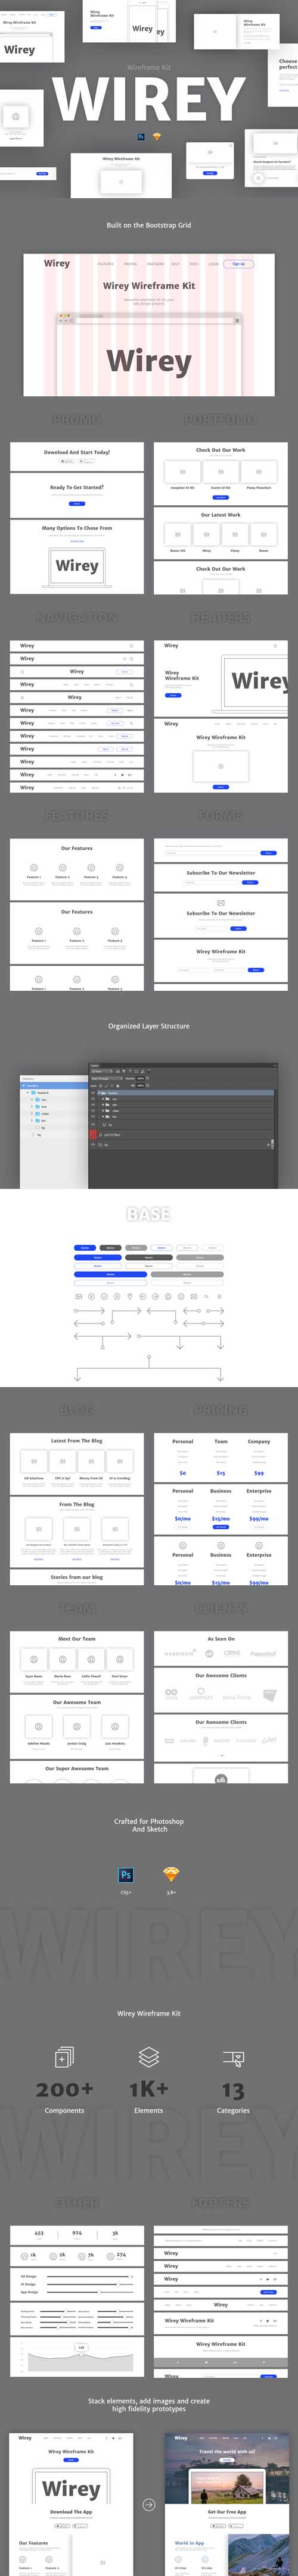 Wirey Wireframe Kit